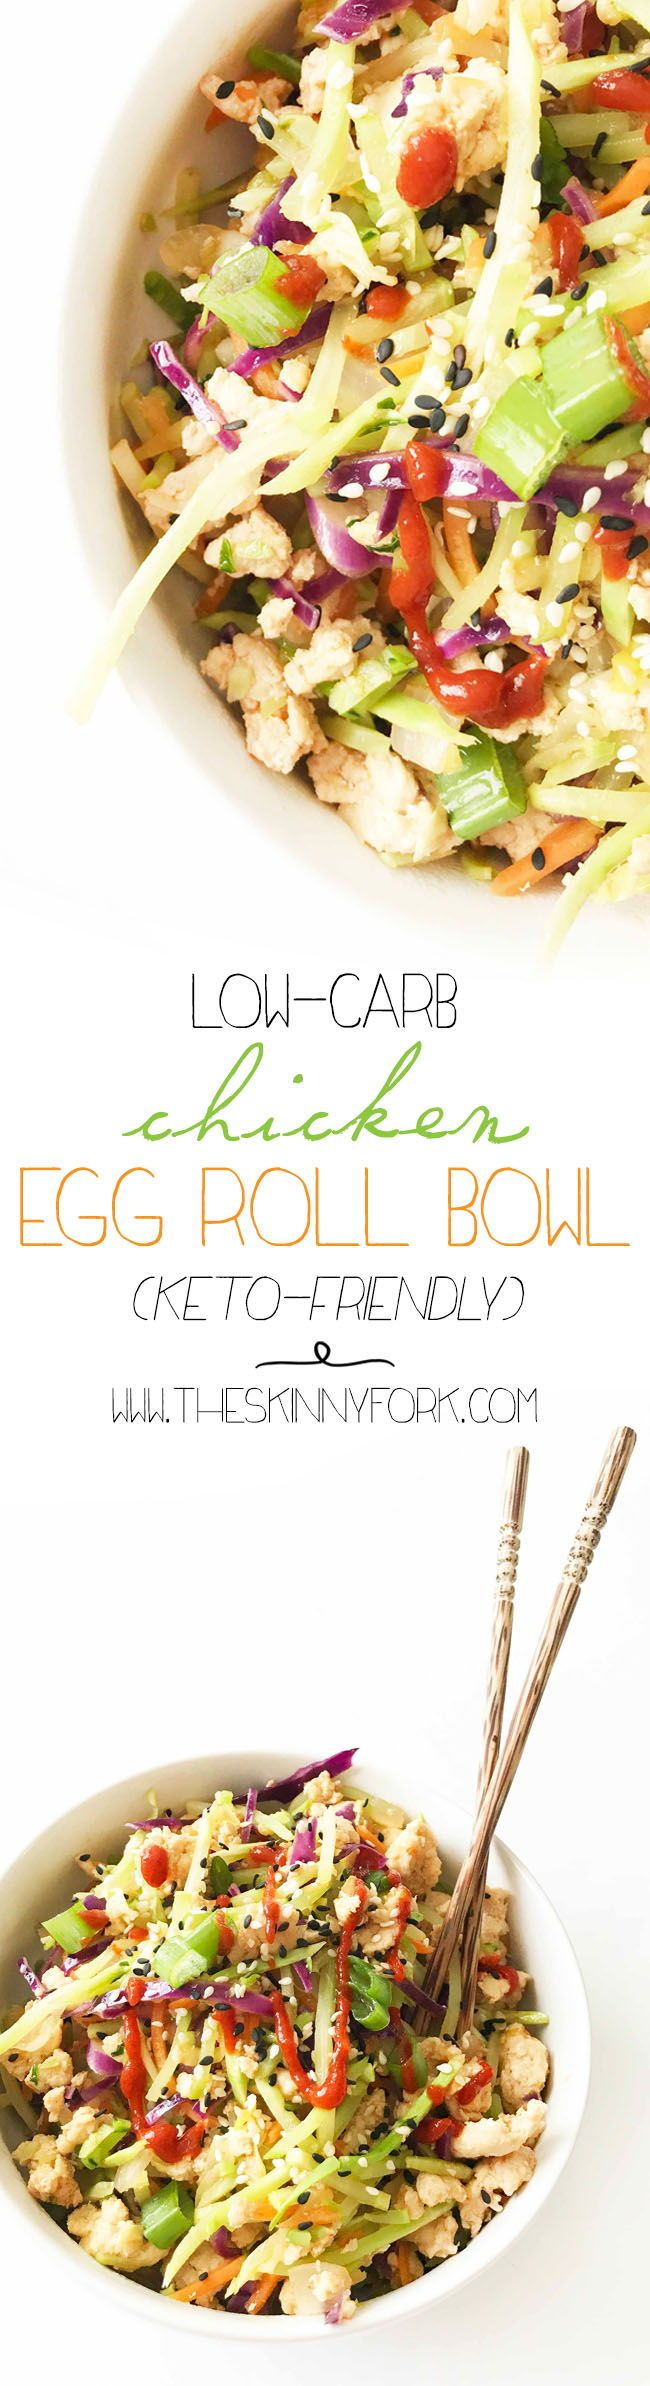 This Low-Carb Chicken Egg Roll Bowl is AMAZING. It's a one-pot meal that's gluten-free, low-carb, and keto-friendly! Plus, it couldn't be any more easy to make. TheSkinnyFork.com | Skinny & Healthy Recipes